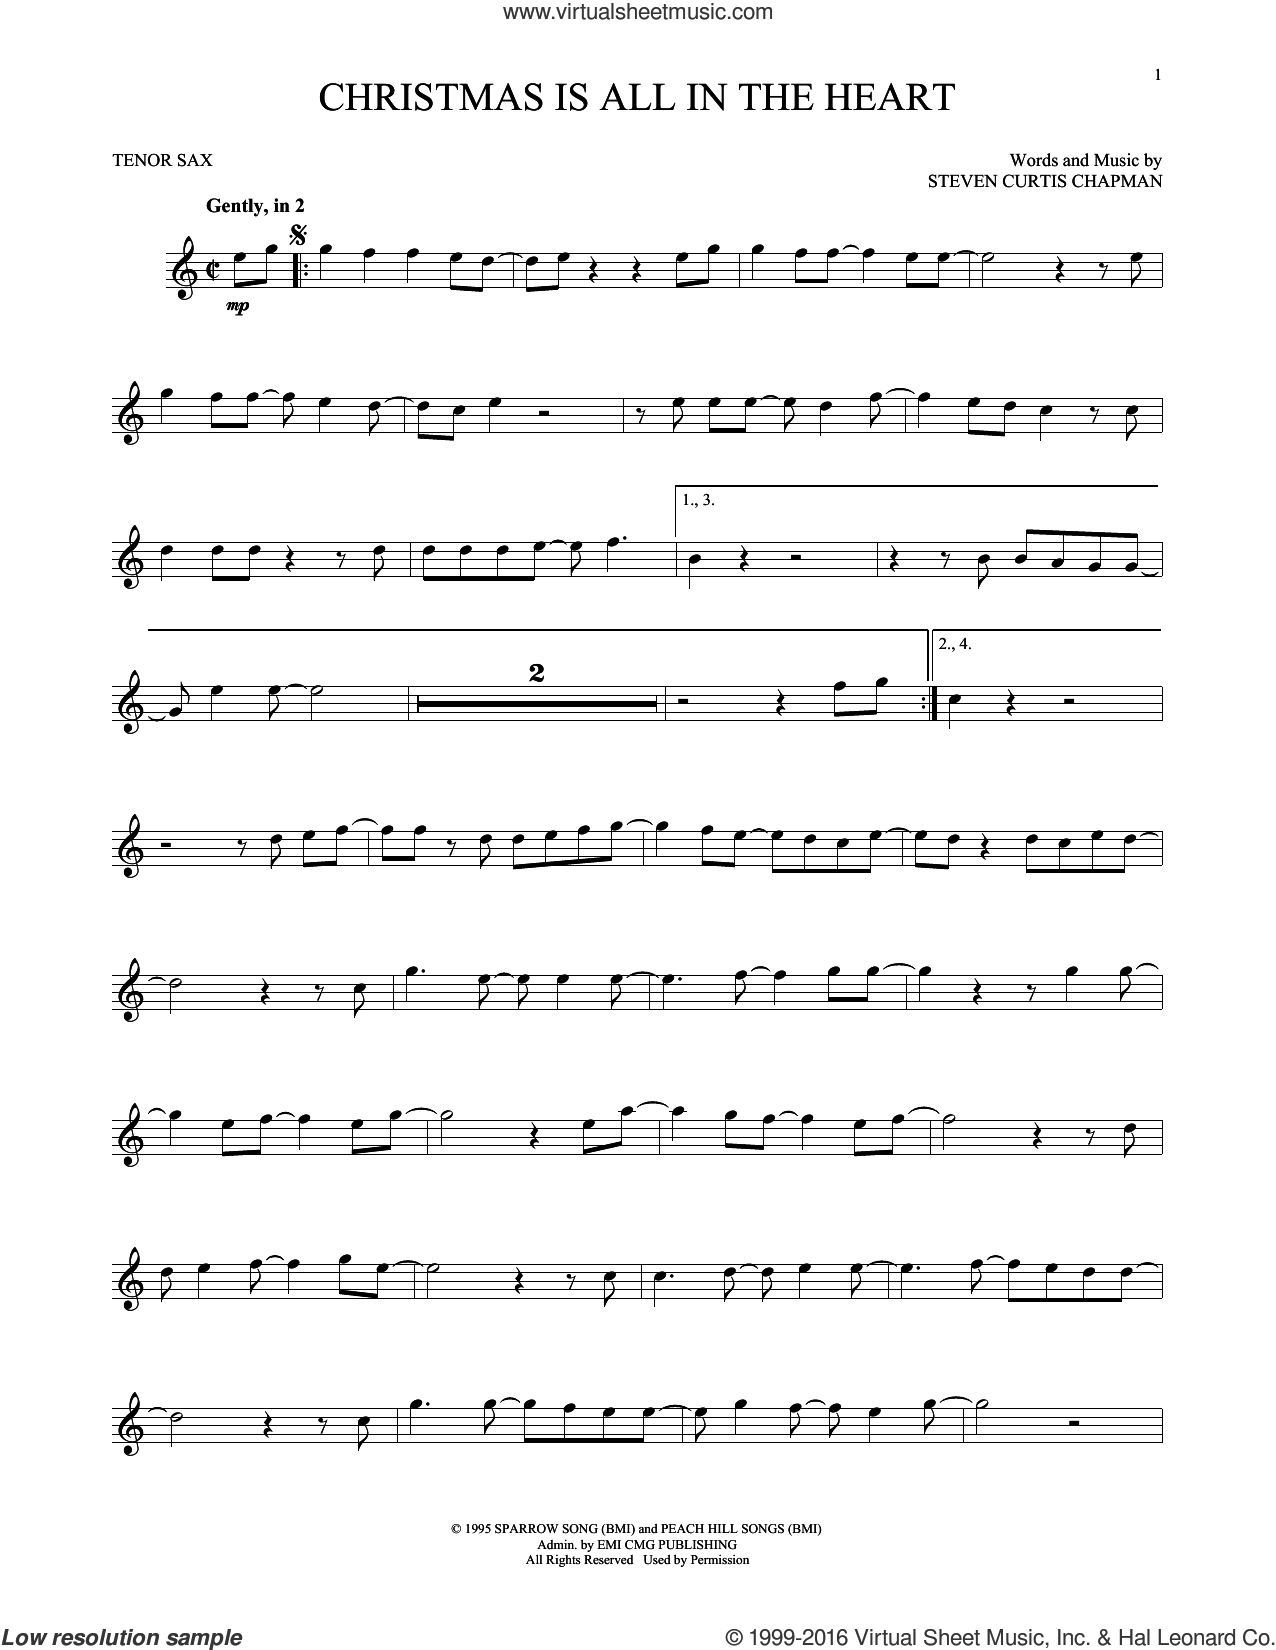 Christmas Is All In The Heart sheet music for tenor saxophone solo by Steven Curtis Chapman, intermediate skill level